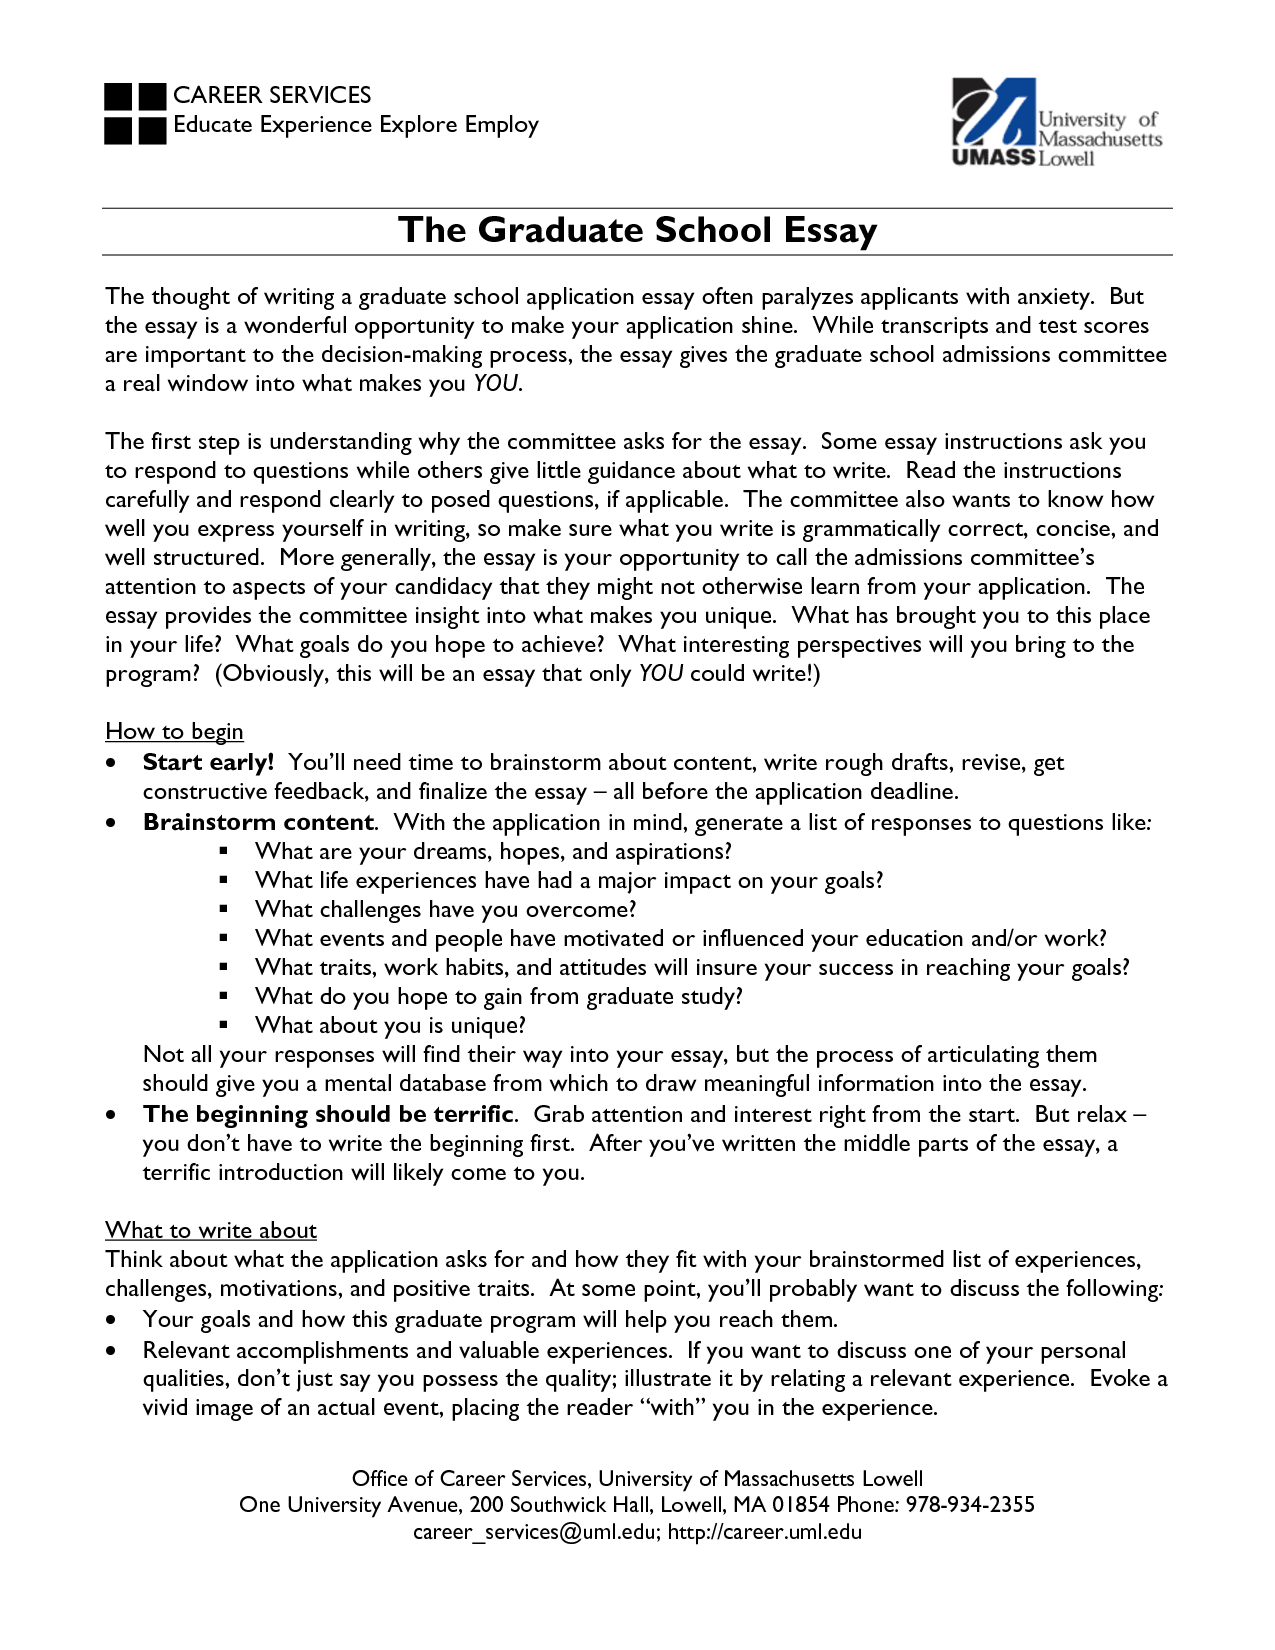 Phd program admission essay